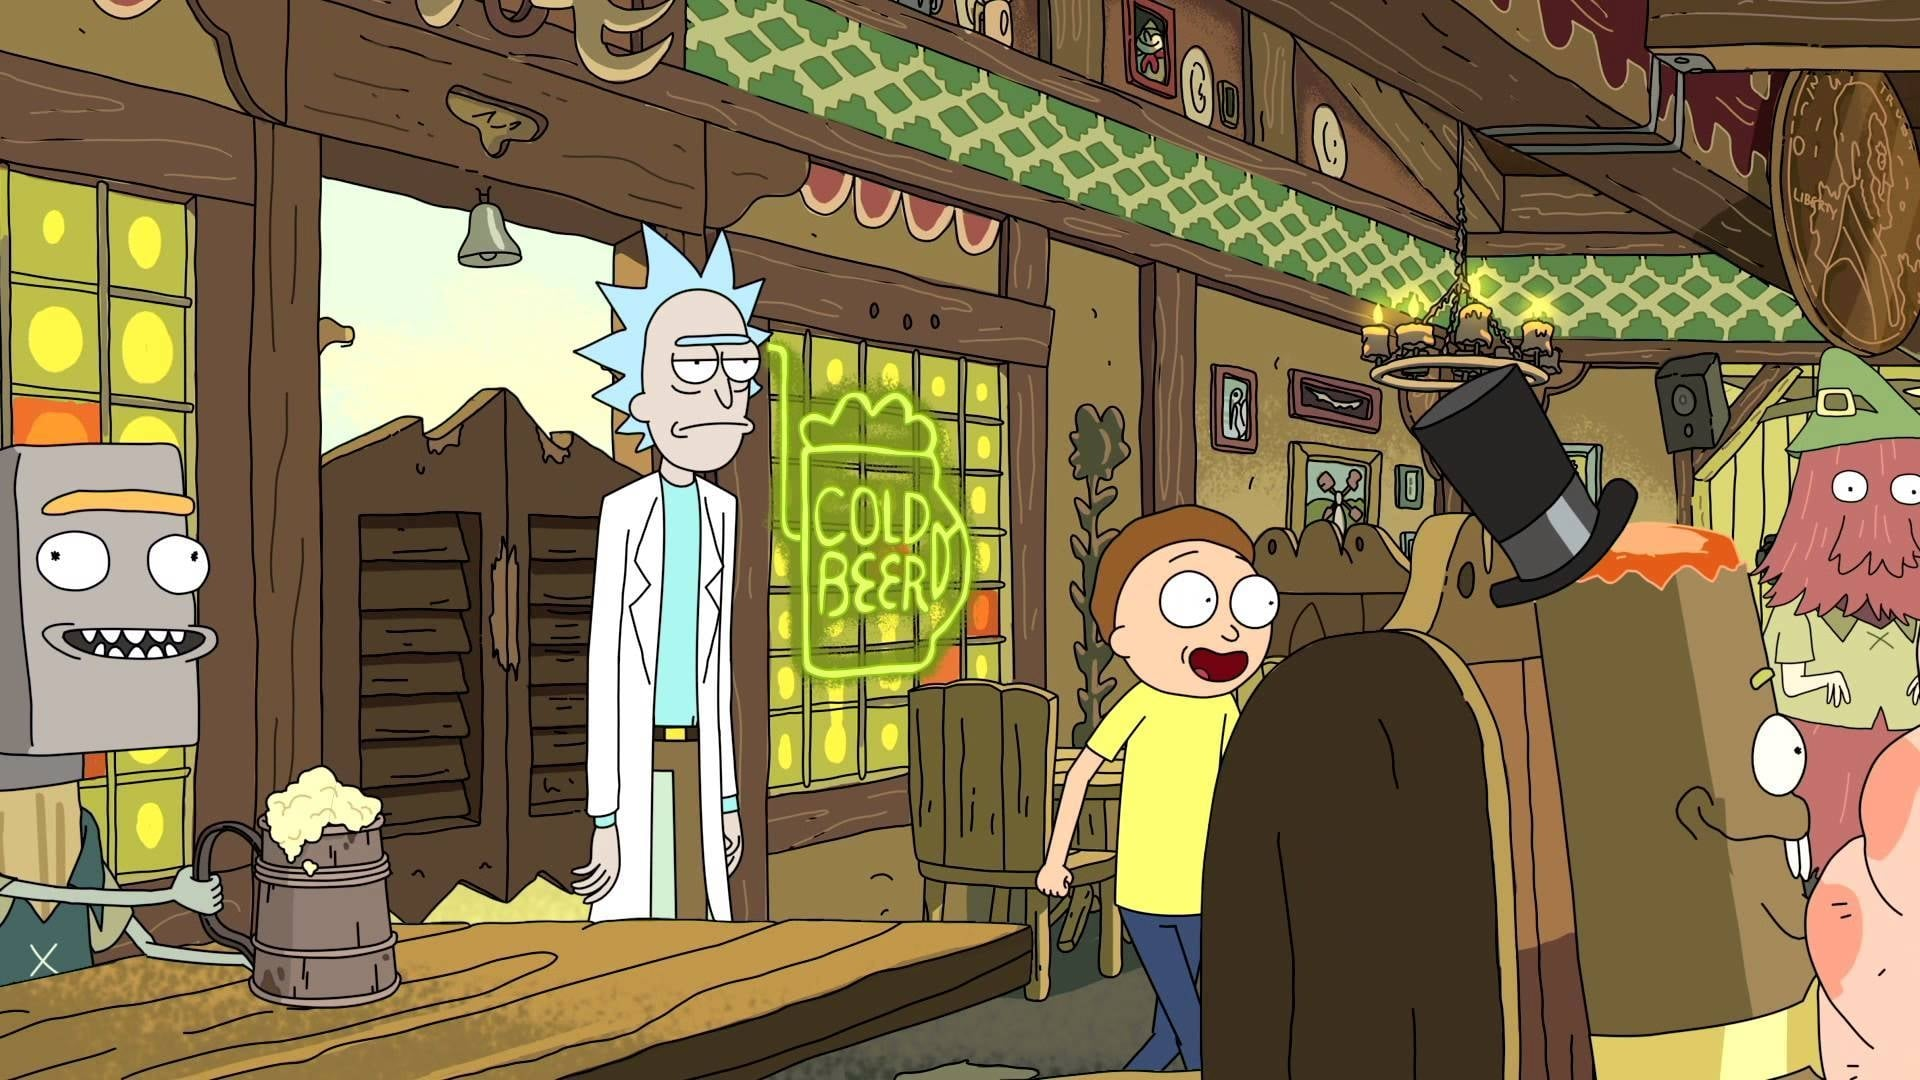 Rick and Morty - Season 1 Episode 5 : Meeseeks and Destroy